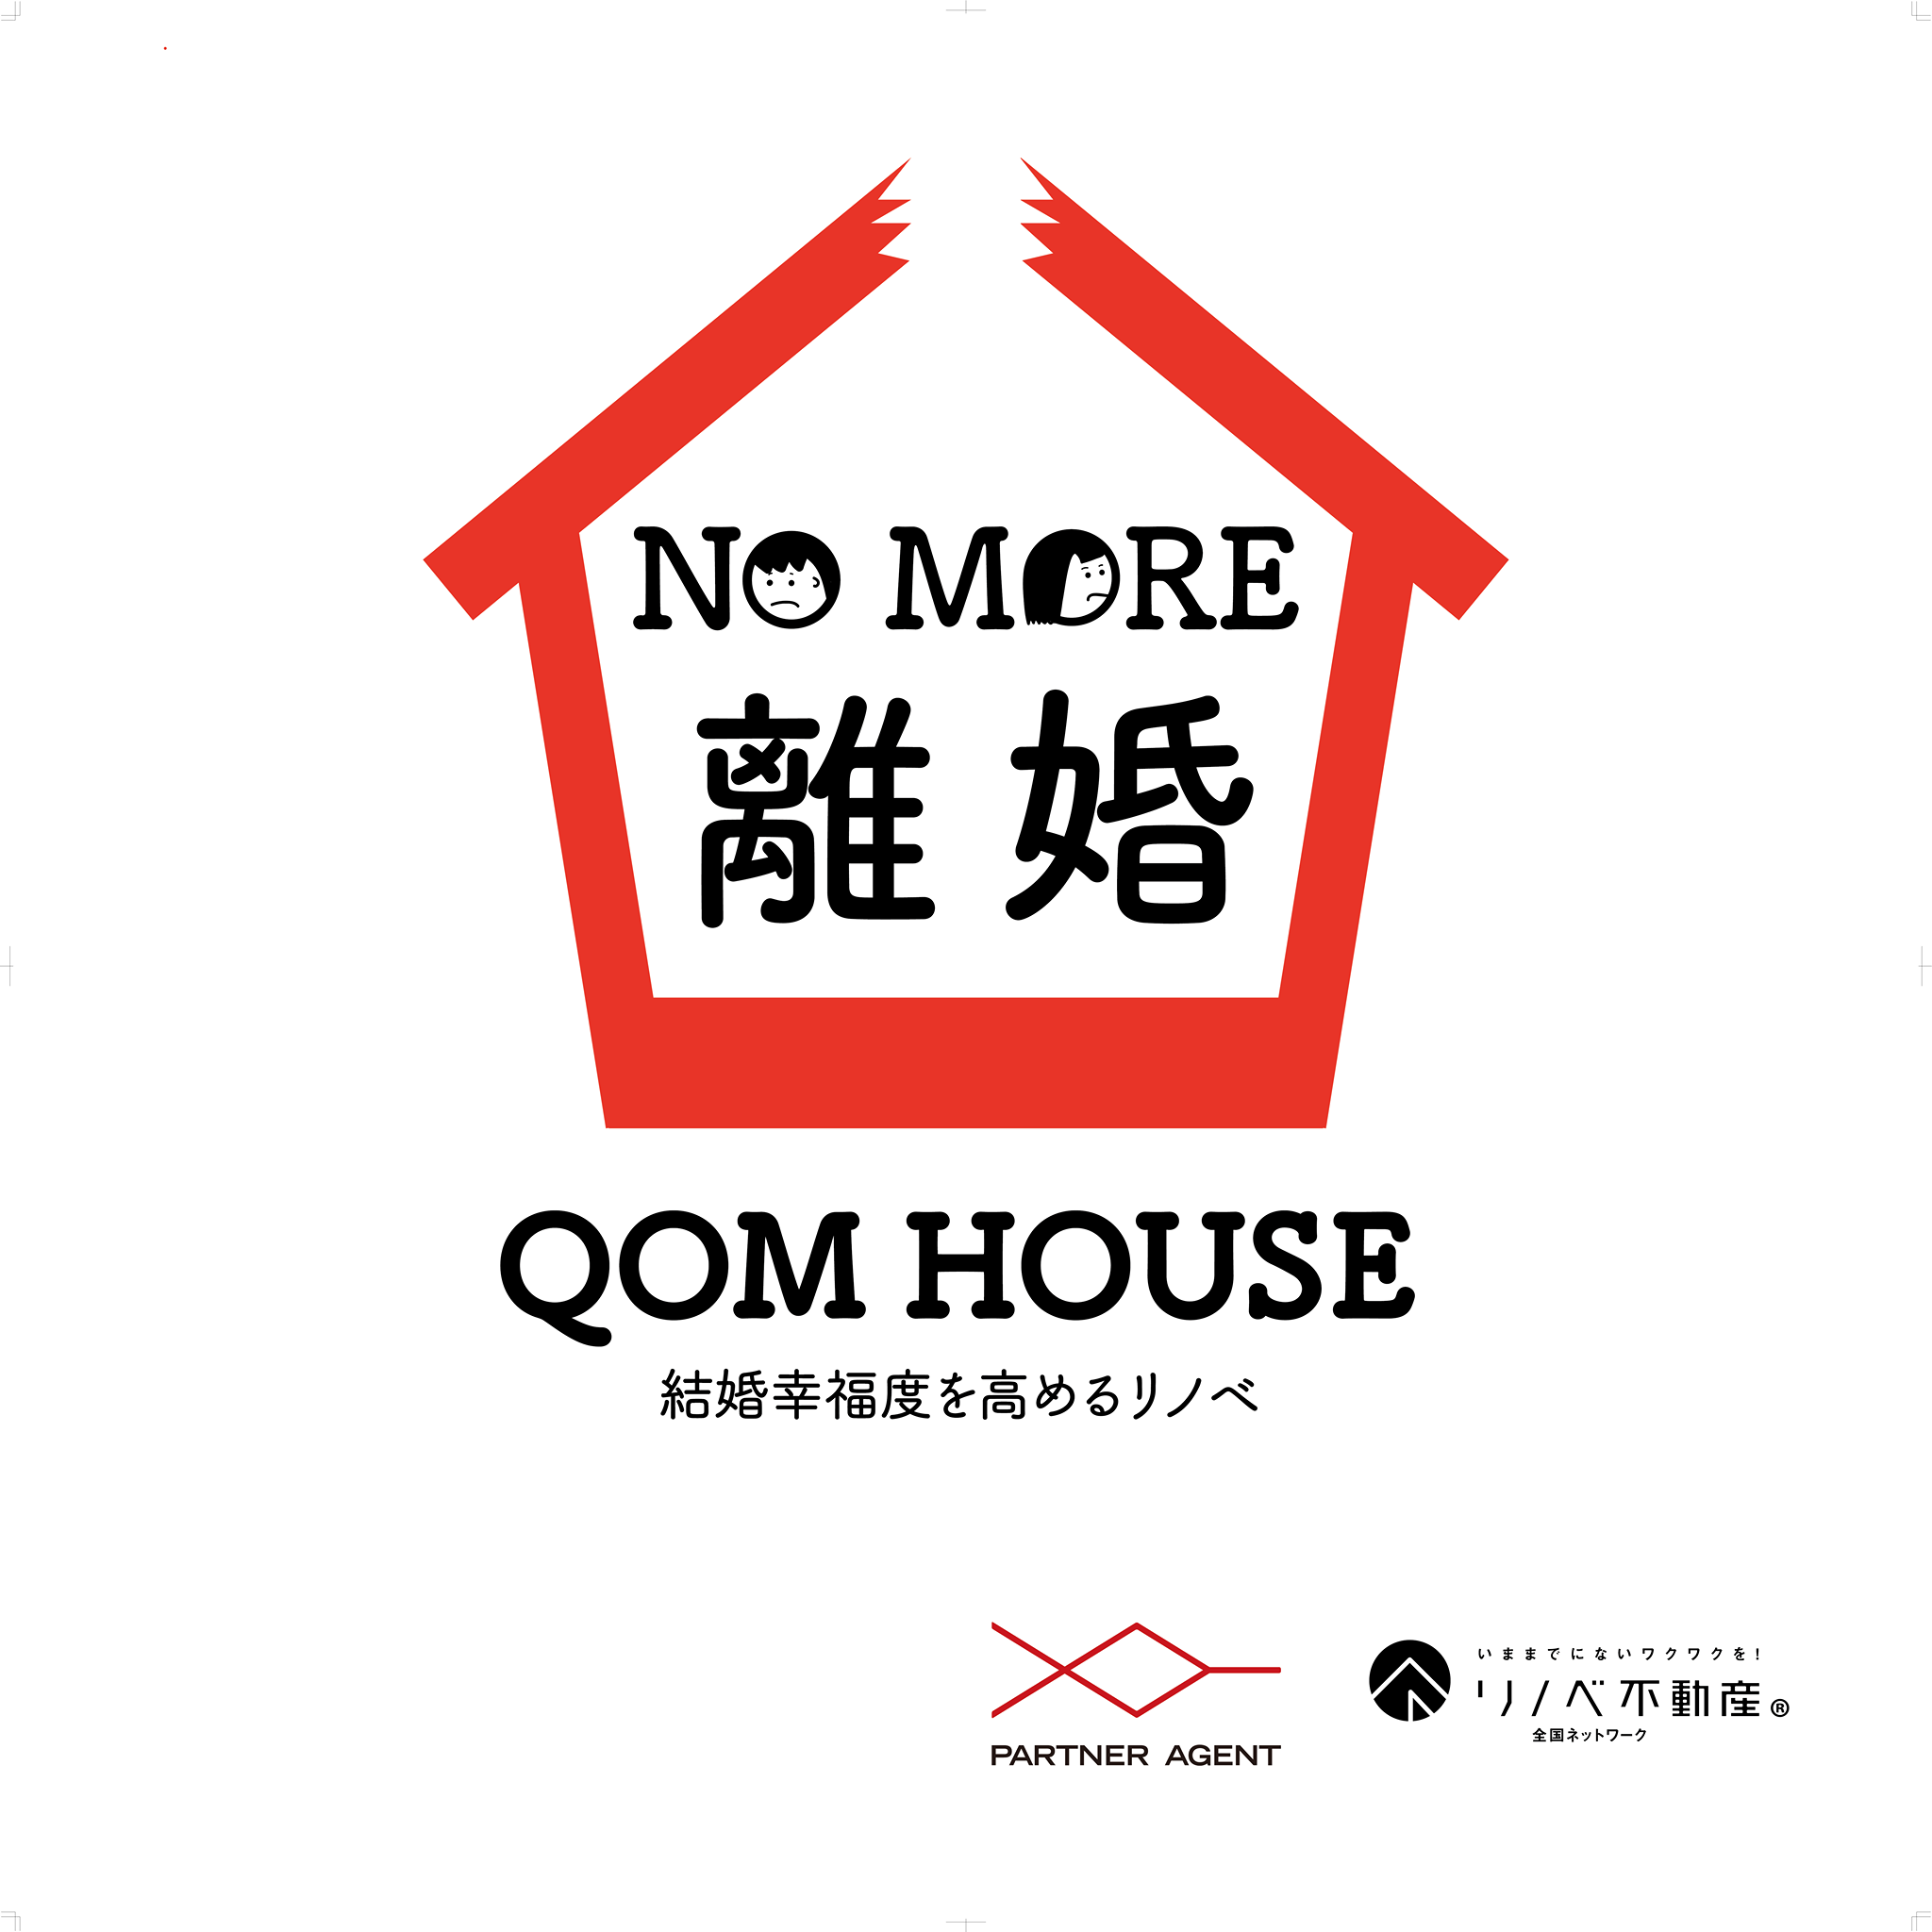 QOM HOUSE no more rikon